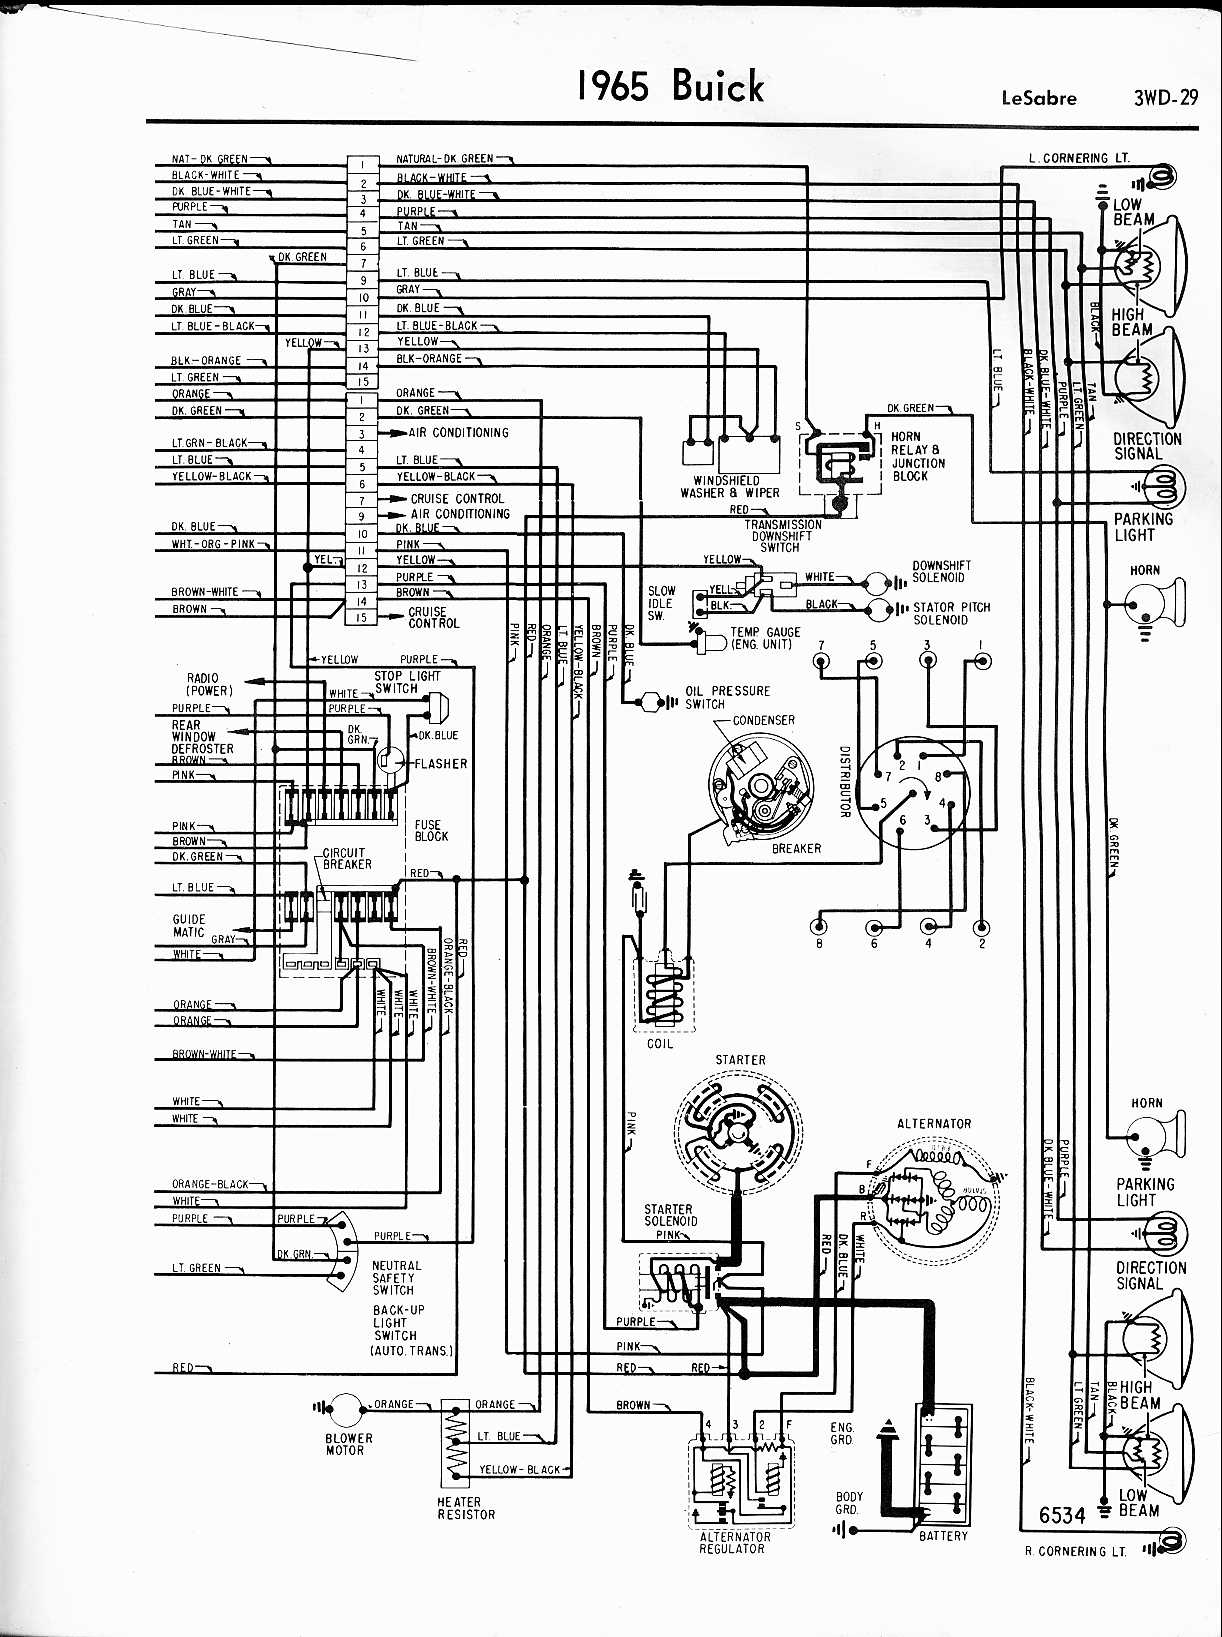 1996 Buick Skylark Fuse Box Diagram Wiring Diagrams 1986 Grand Marquis Century Lighting Detailed Schematics 2000 Dash